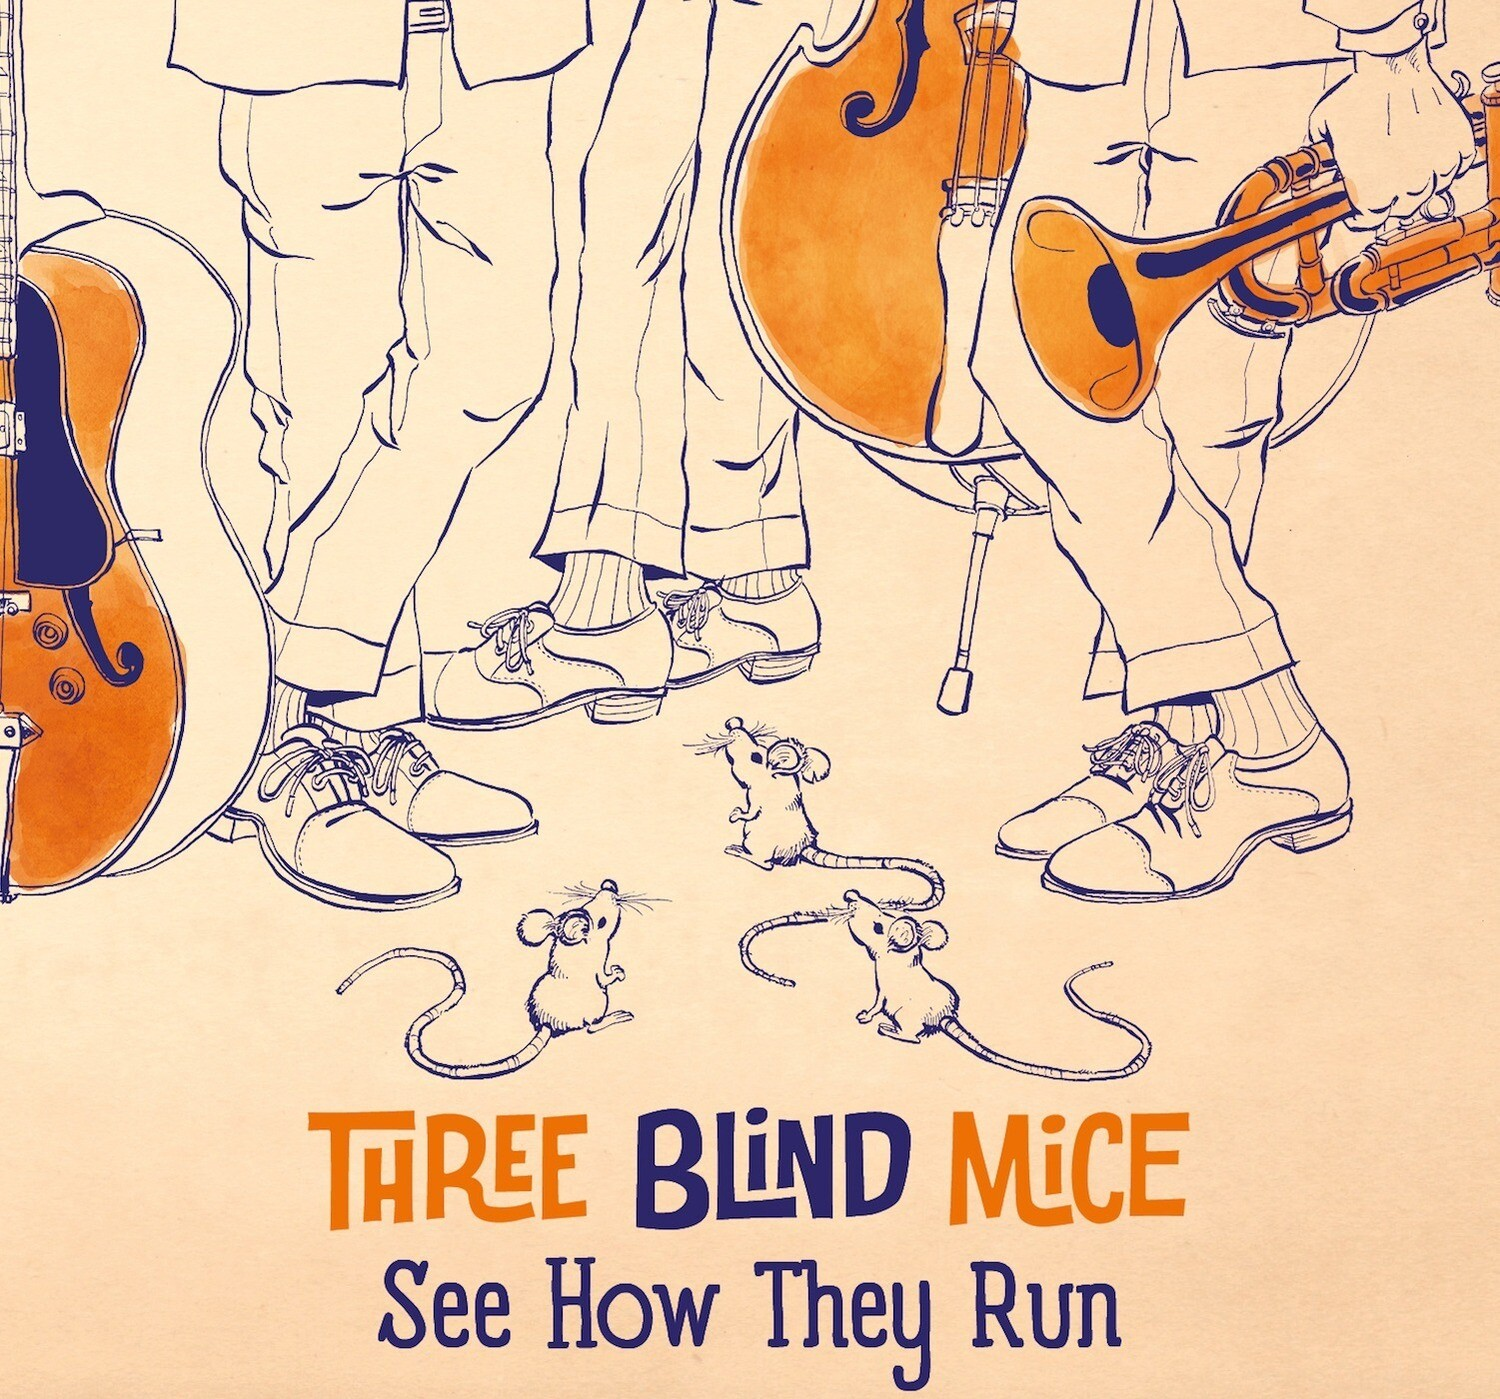 Three Blind Mice - See How They Run